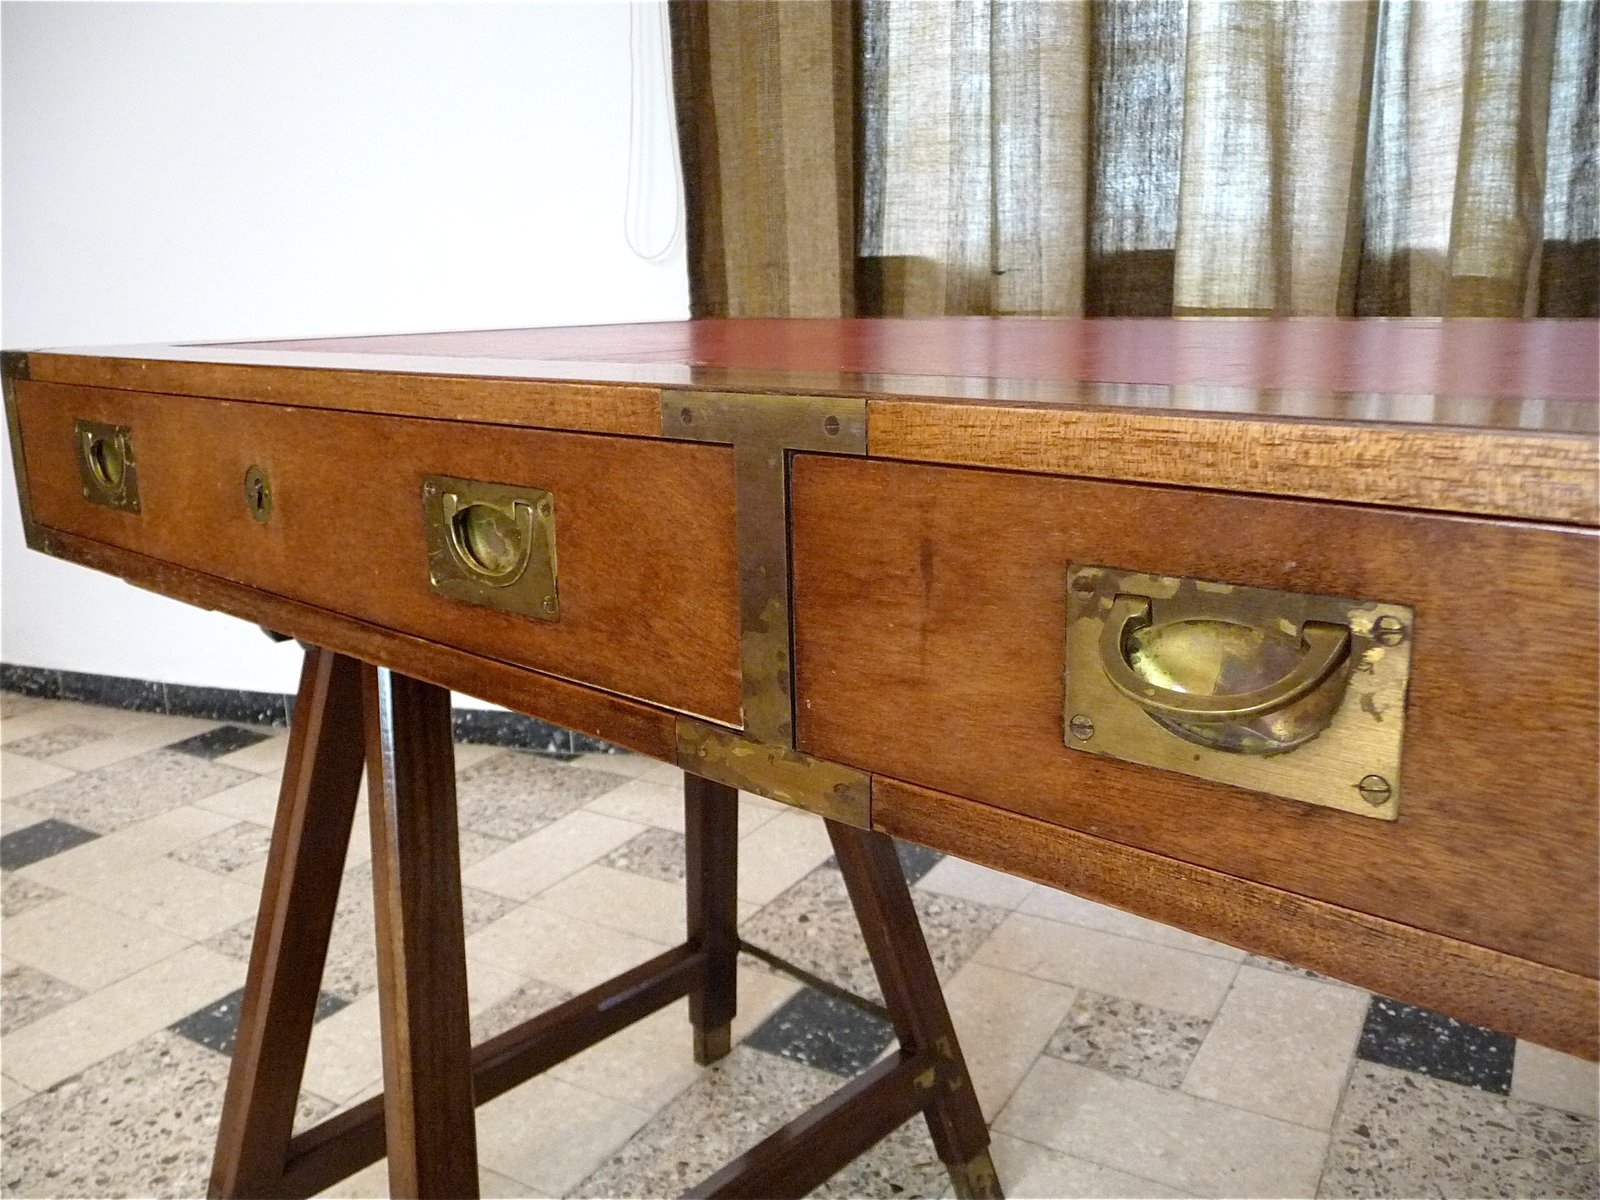 Antique Caign Table Image And Candle Victimist